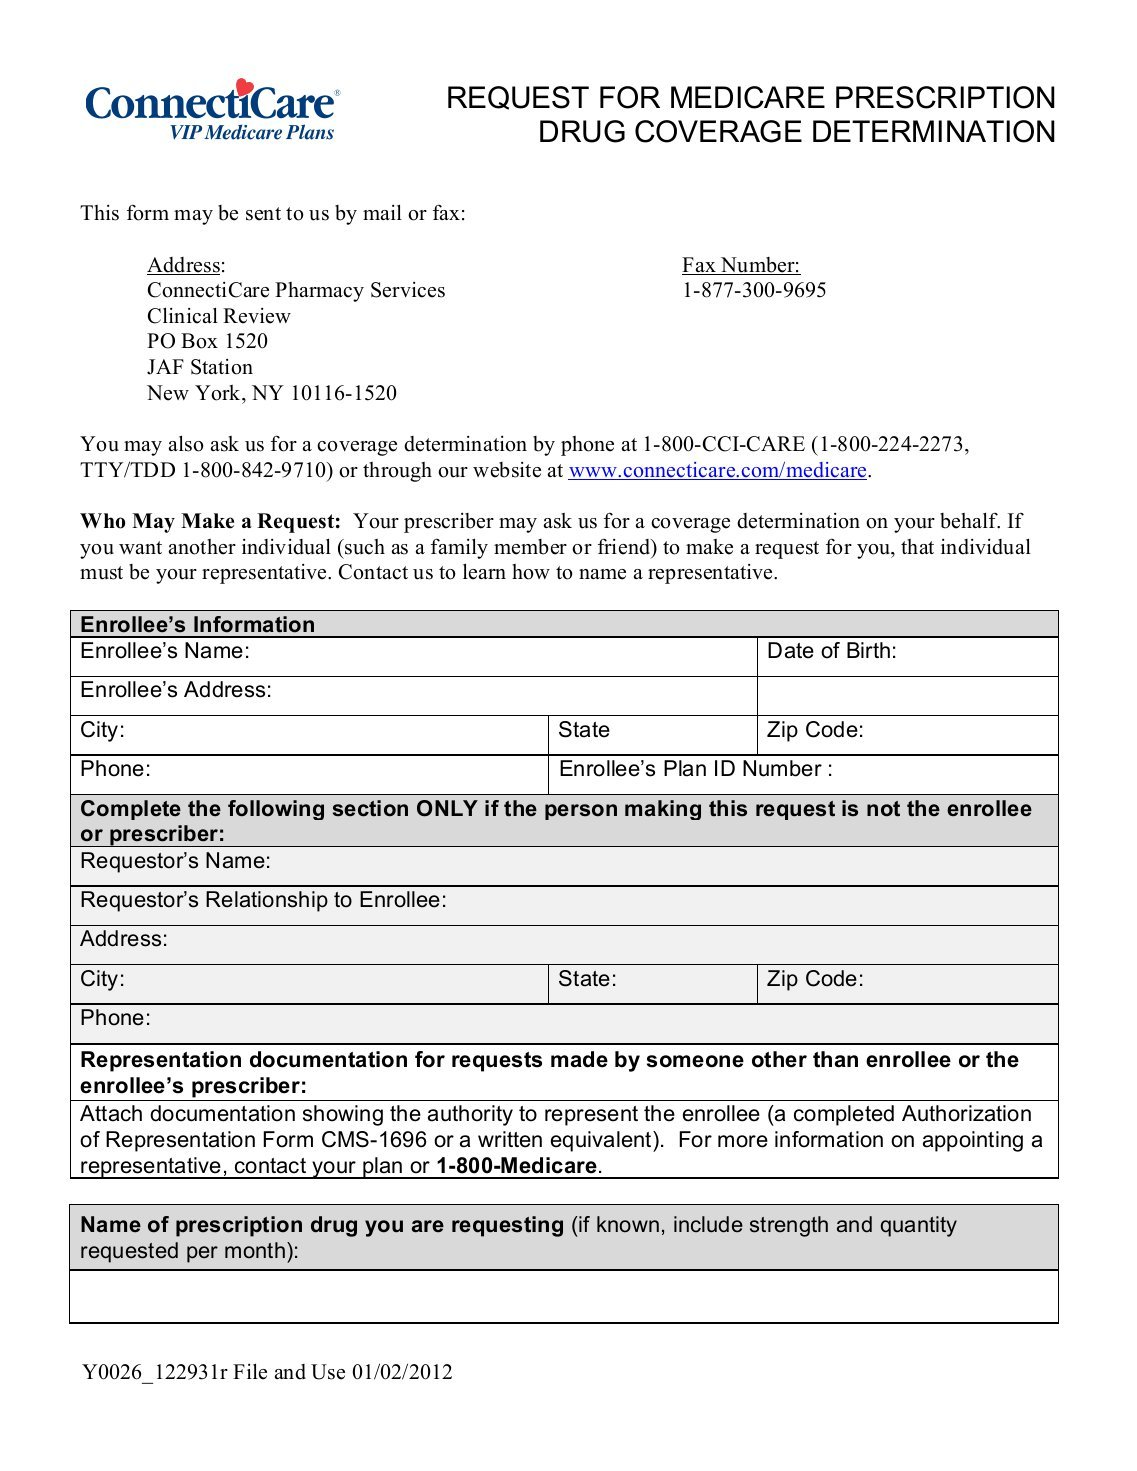 Connecticare Medicare Pa Forms